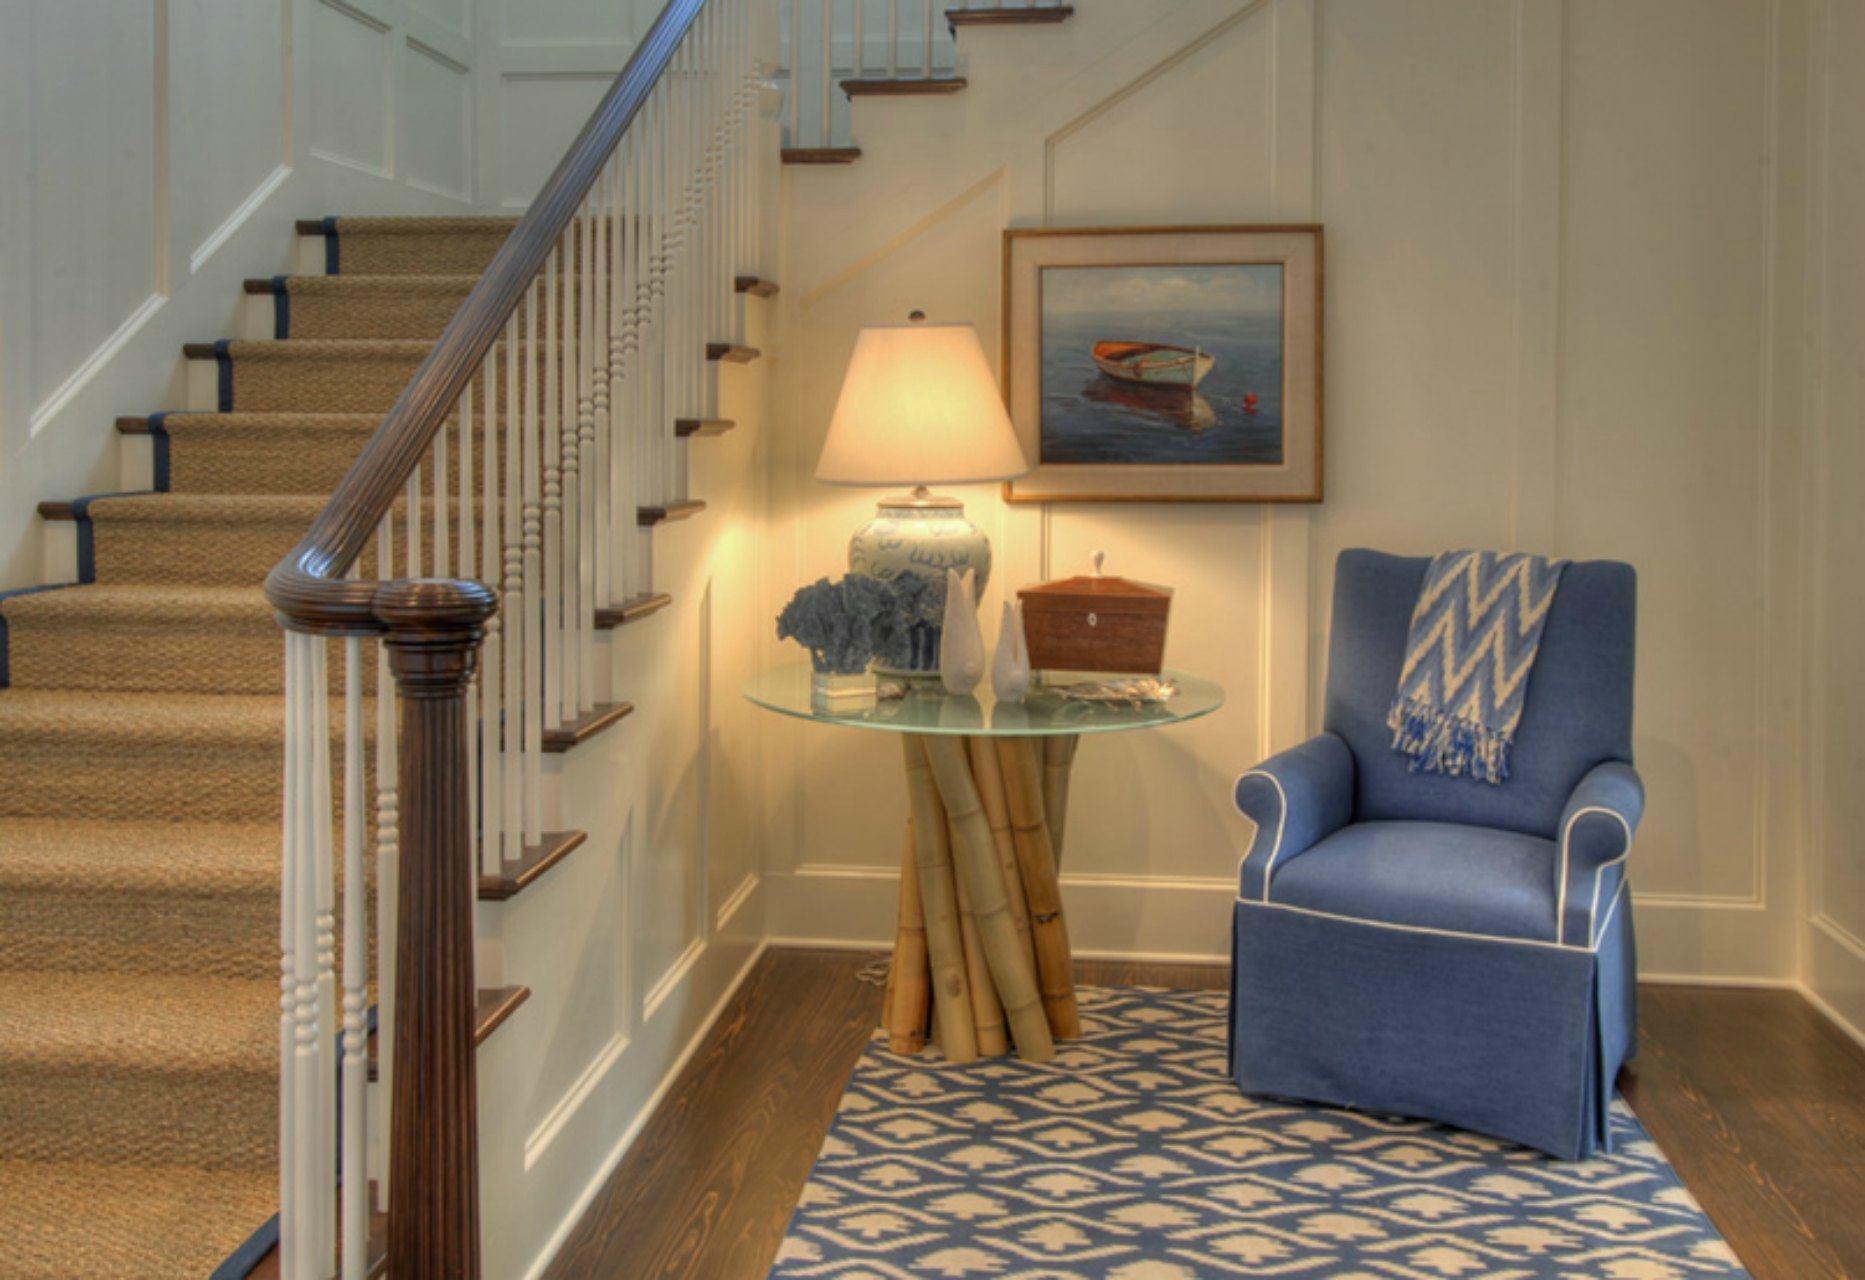 Mary bryan peyer designs inc blog archive nautical for Home decor of 9671 inc